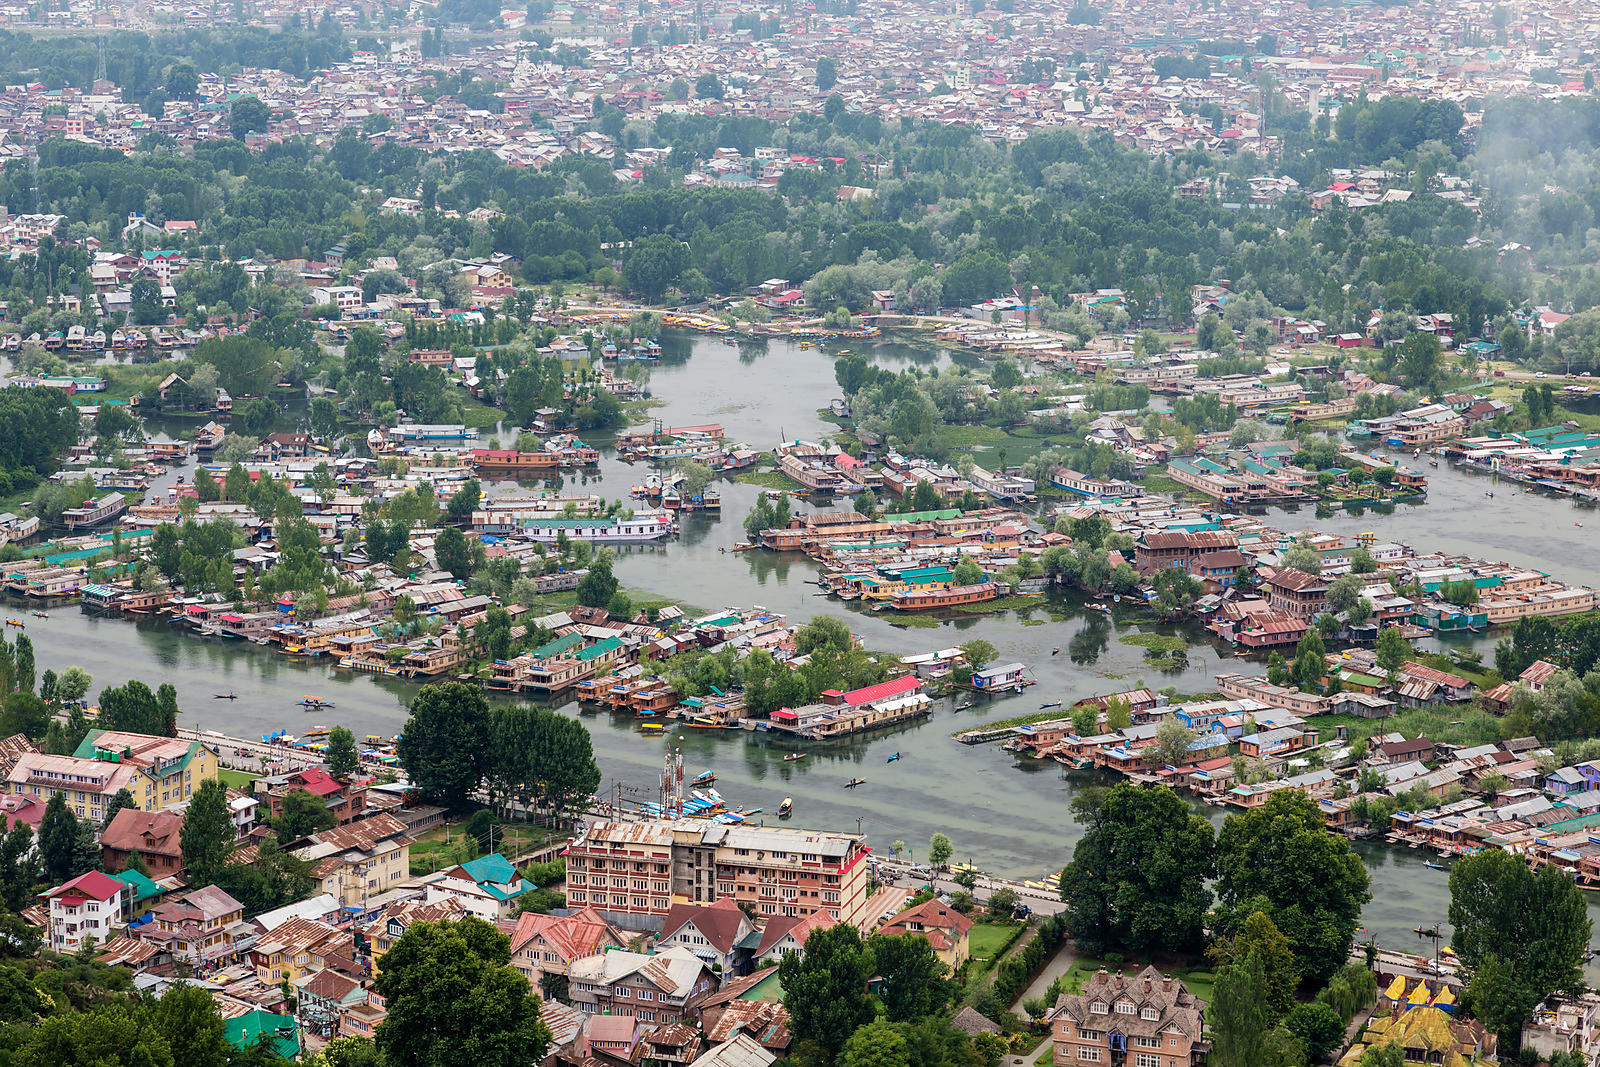 House Boats on Dal Lake from Takht-e -Suleiman